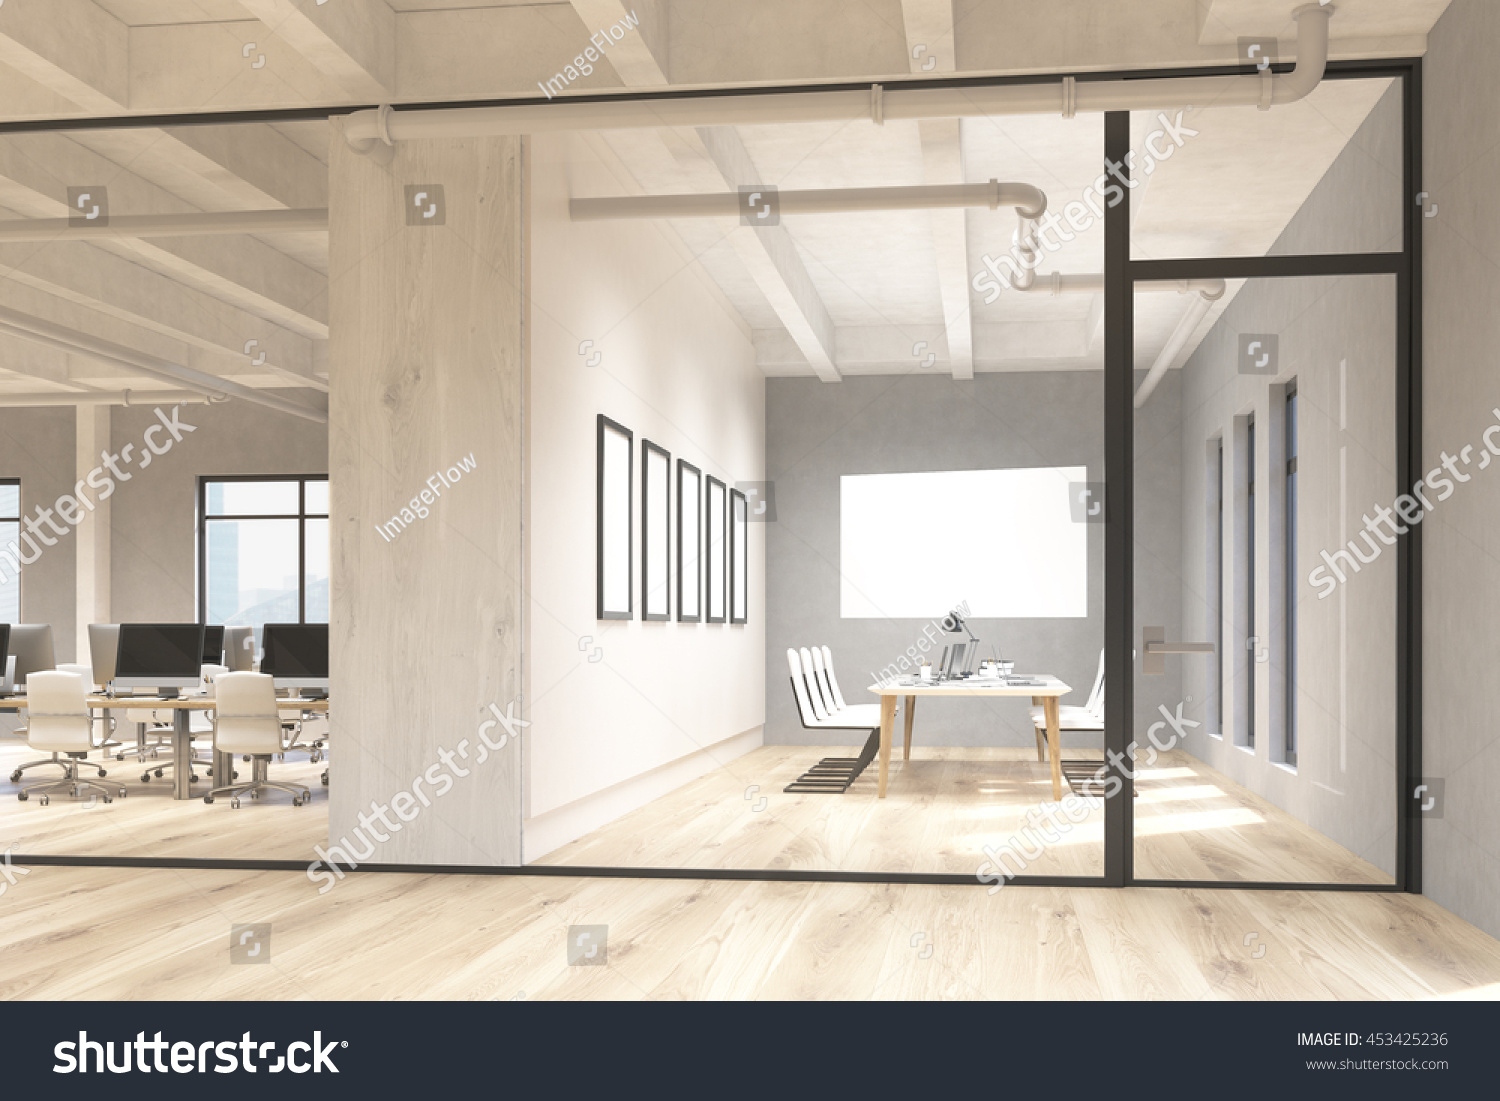 Side View Office Conference Room Interior Stock